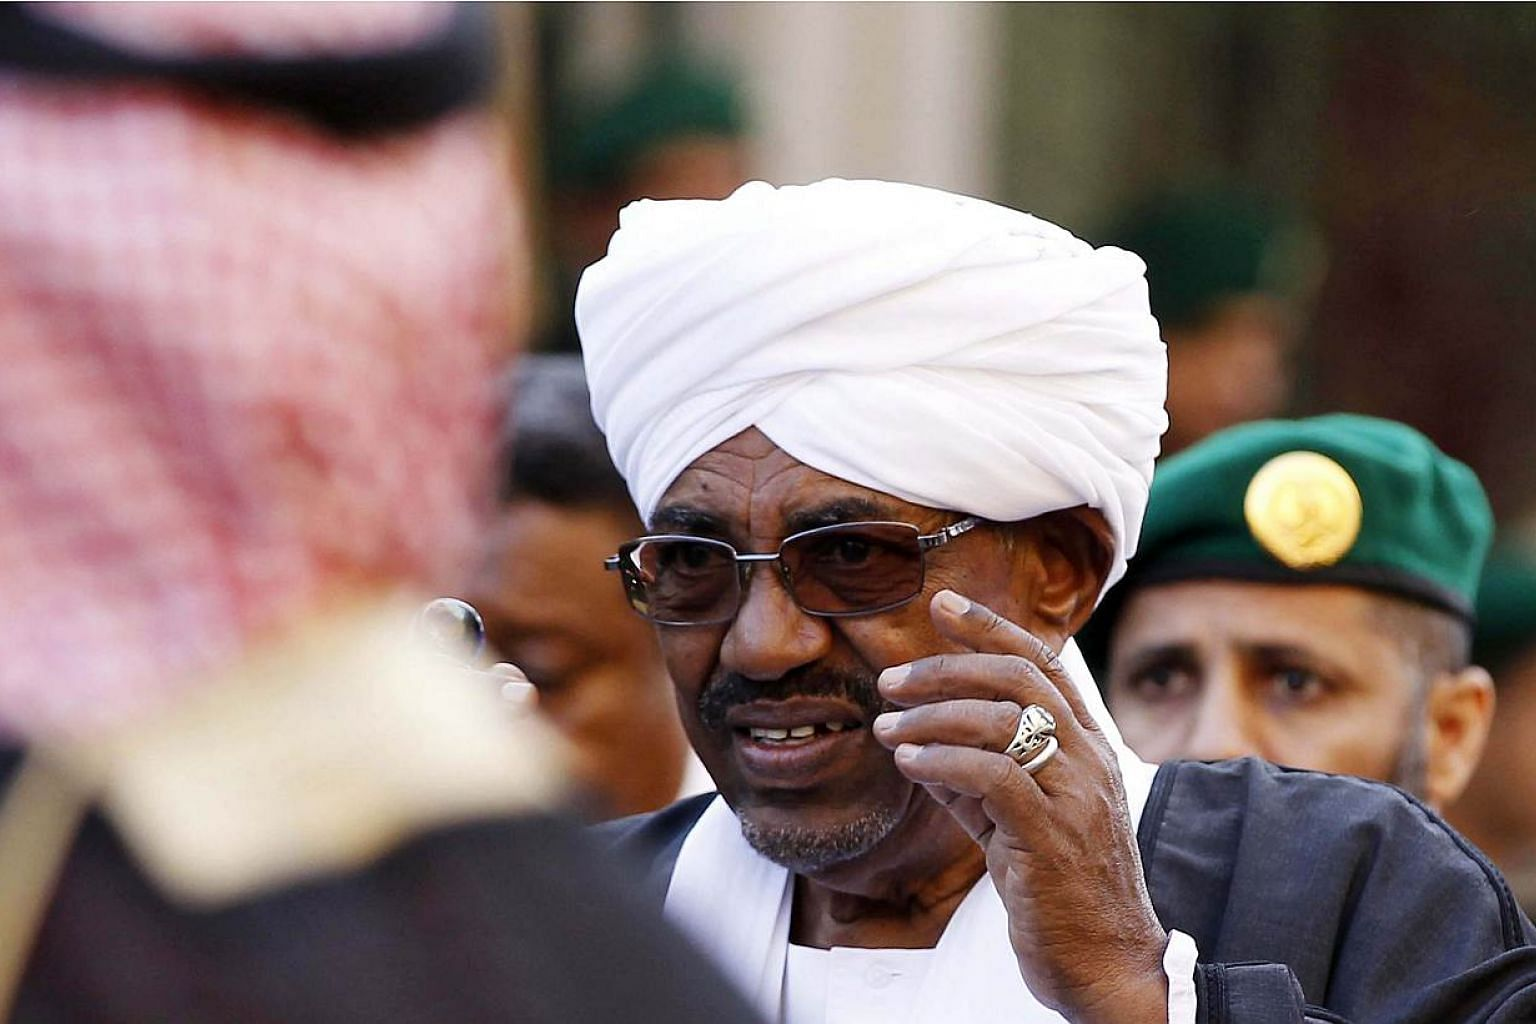 A file picture dated on Jan 23, 2015 shows the President of Sudan, Omar al-Bashir, at the funeral of the late Saudi King, Abdullah bin Abdulaziz al-Saud, in Riyadh, Saudi Arabia. South Africa's High Court barred the Sudanese President from leavi